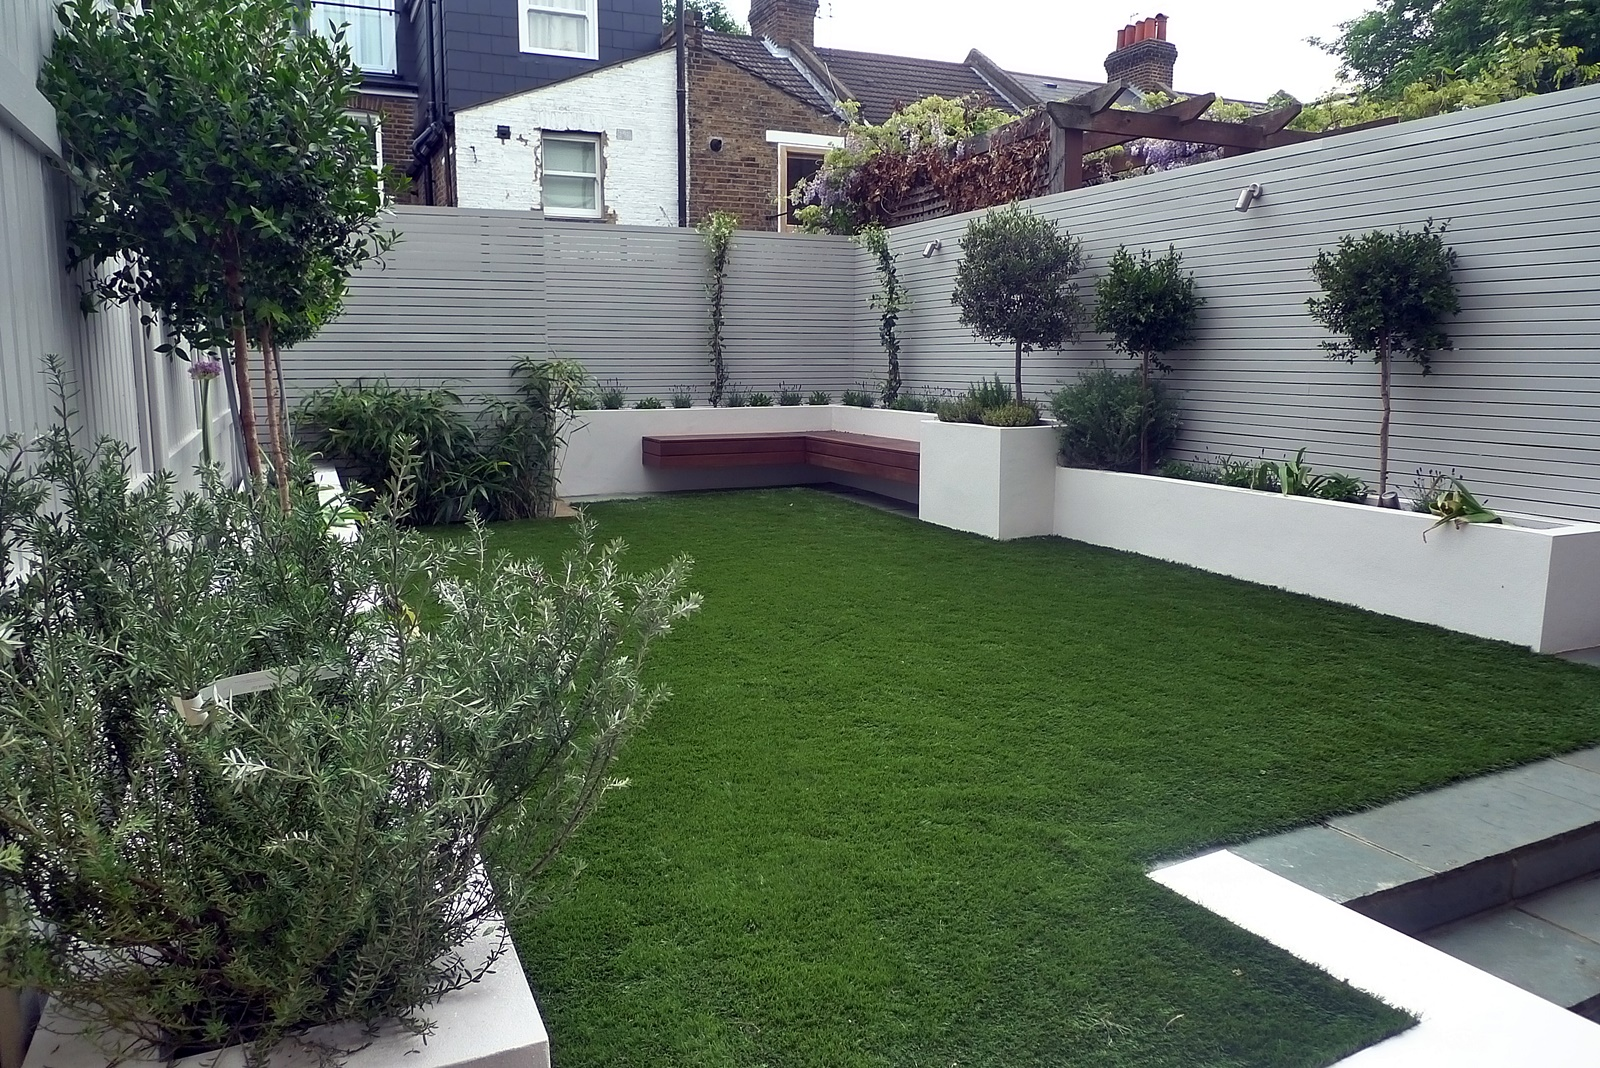 London garden blog london garden blog gardens from for Modern garden design